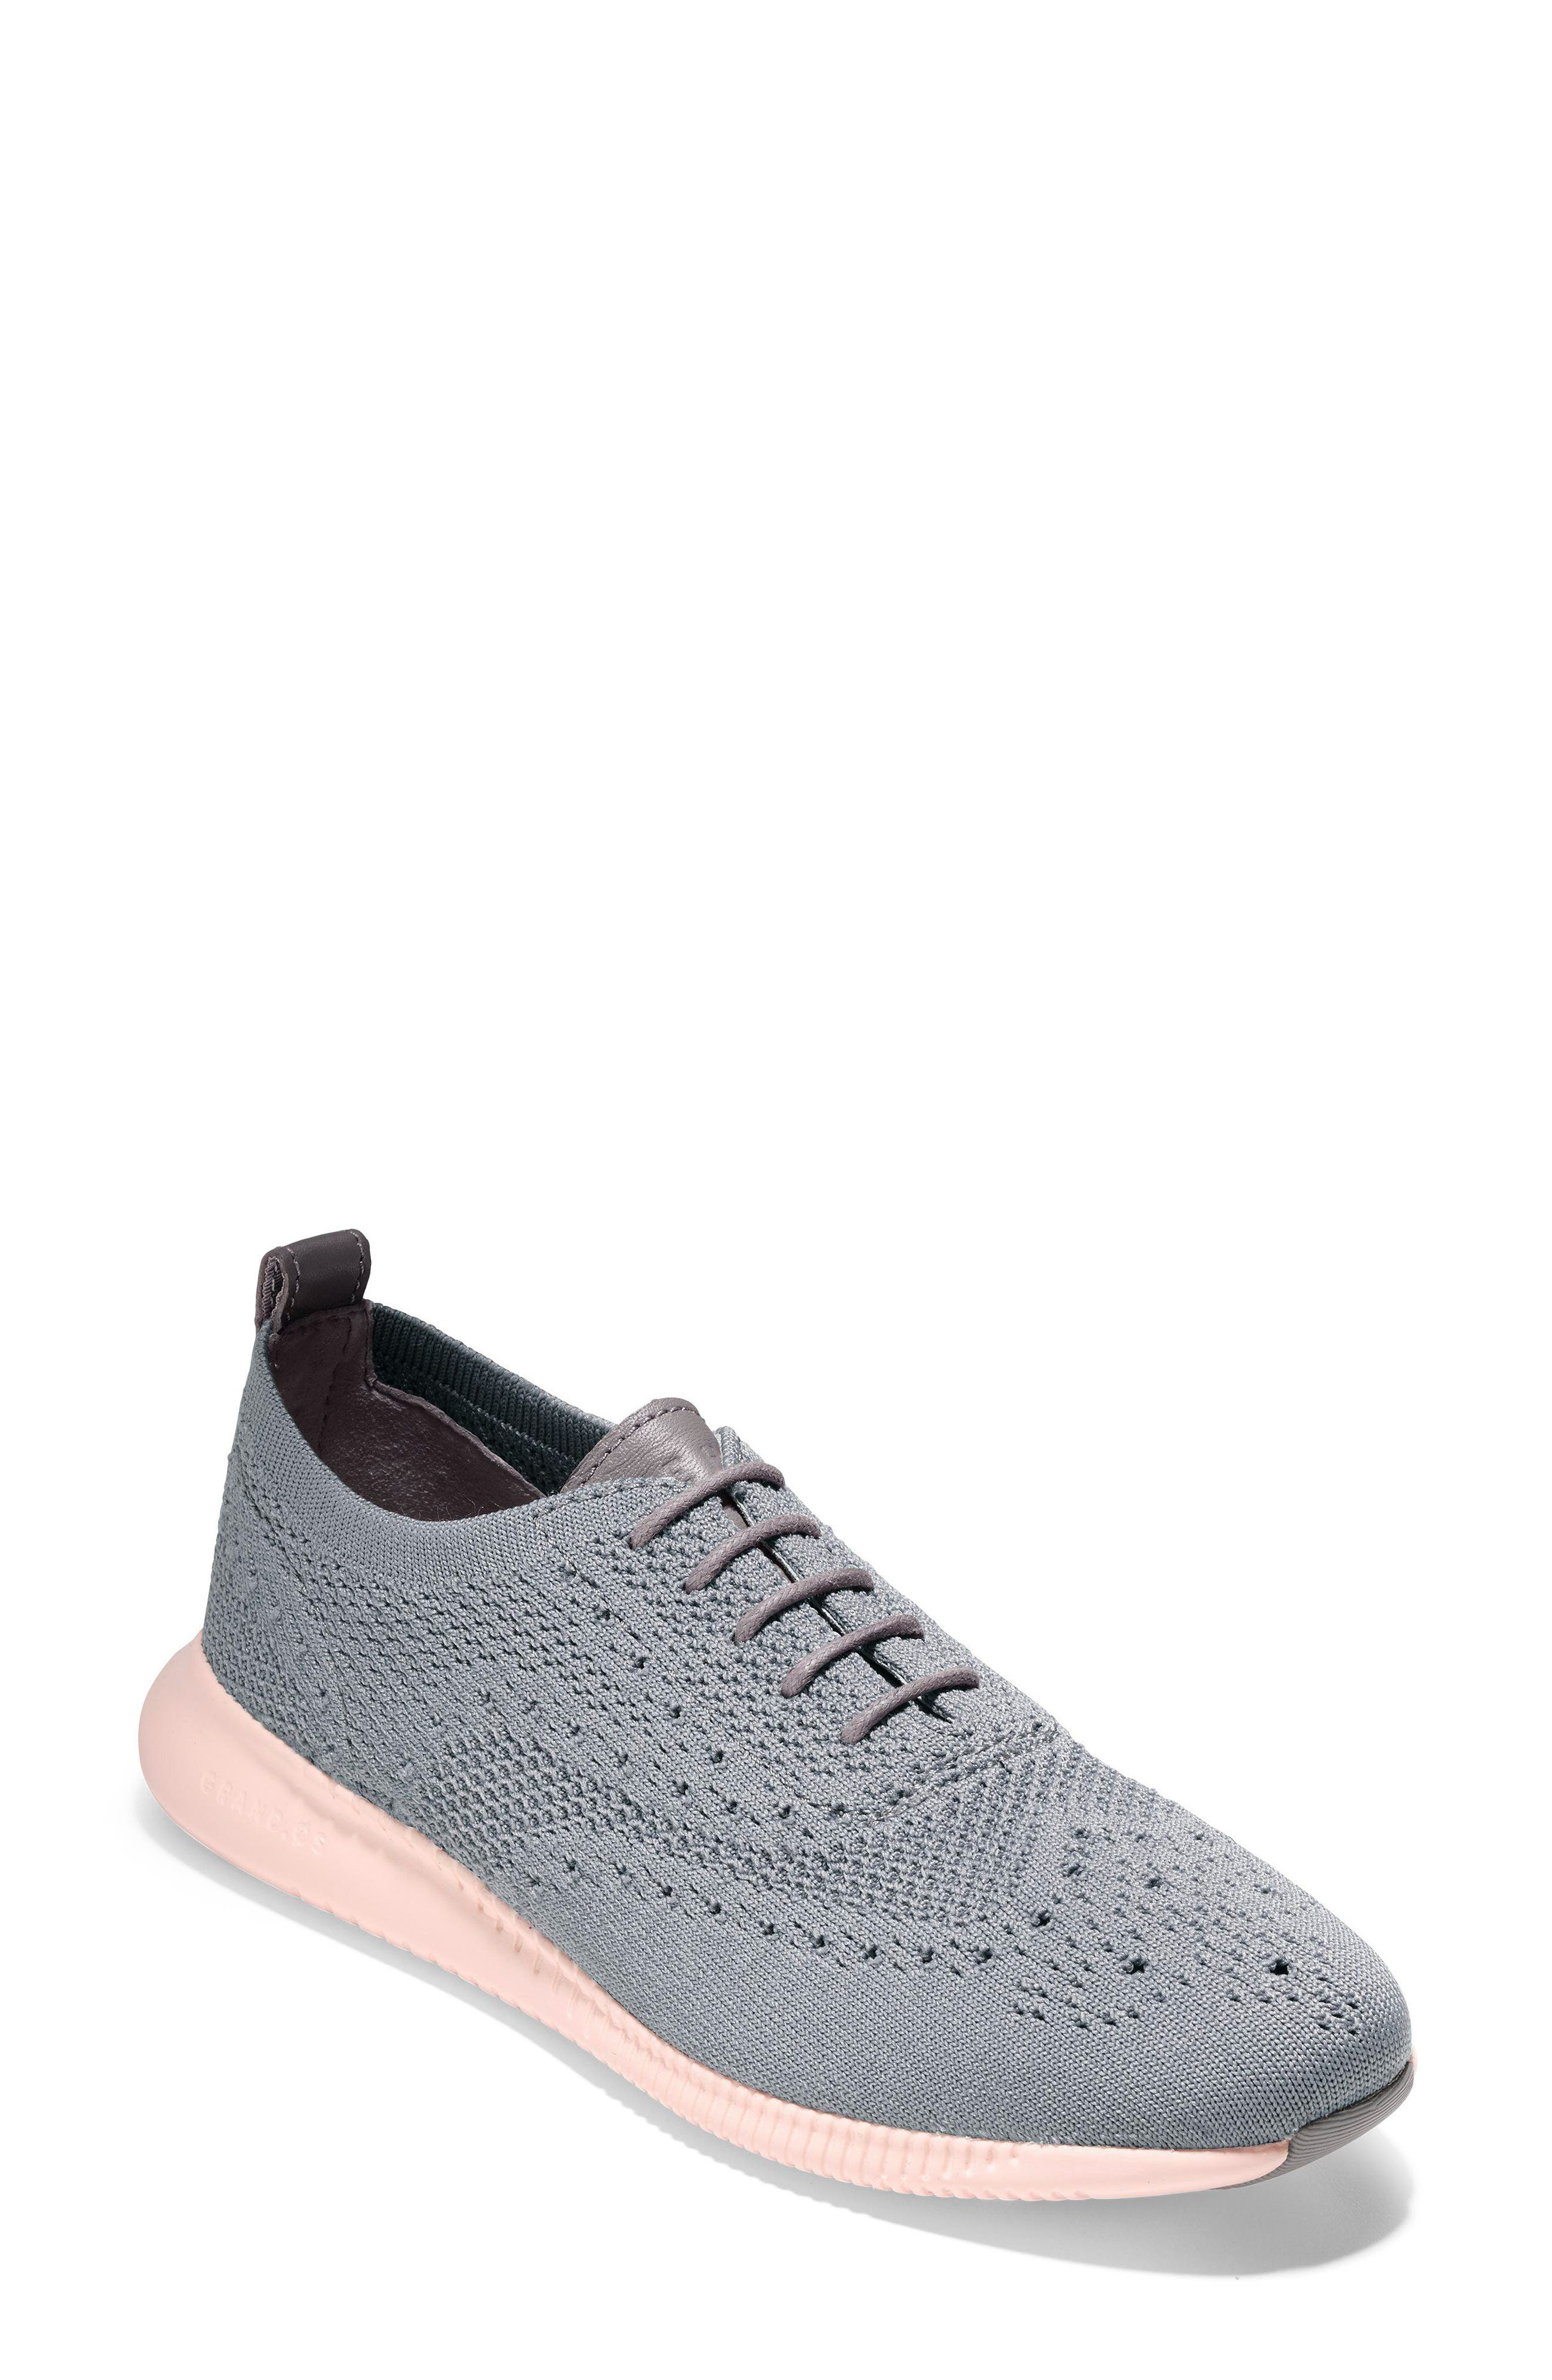 2.ZERØGRAND Stitchlite Wingtip Sneaker,                         Main,                         color, Ironstone Knit Fabric